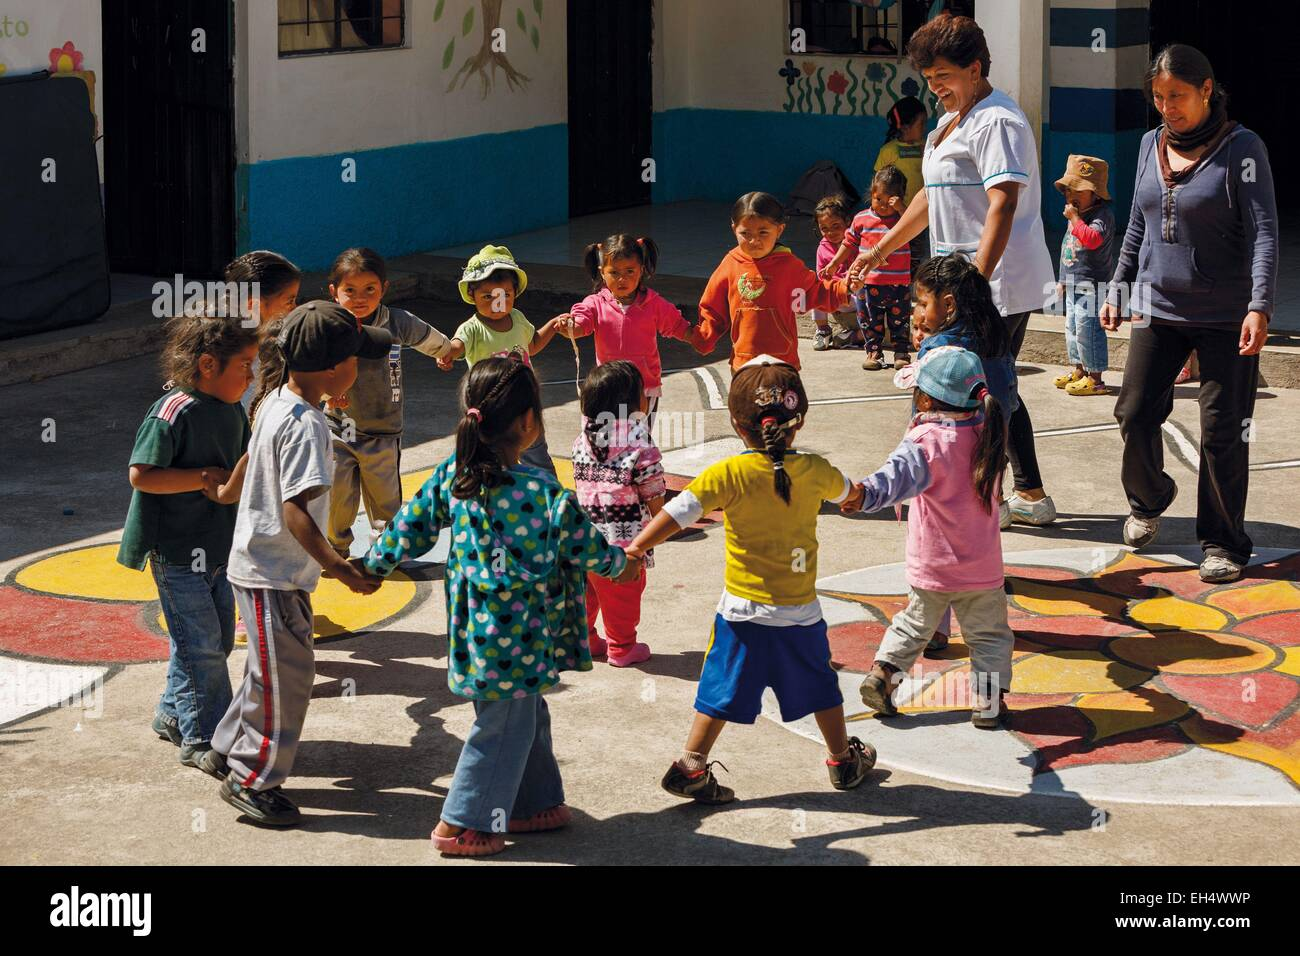 Ecuador, Imbabura, Chilcapamba, young children making a round in the yard of a rural school - Stock Image